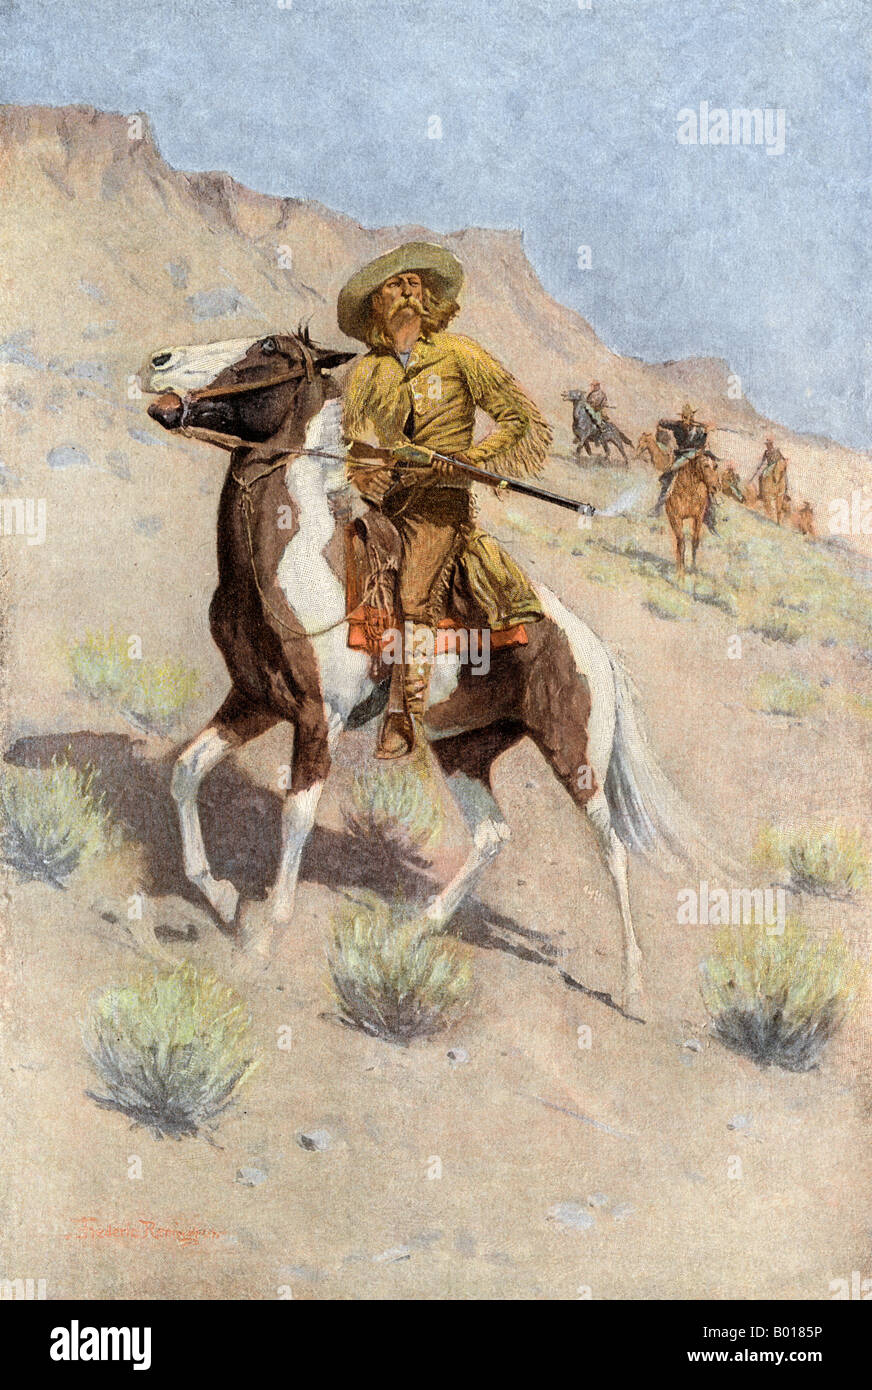 The scout a frontiersman employed by US Army in the opening of the west. Color halftone of a Frederic Remington - Stock Image